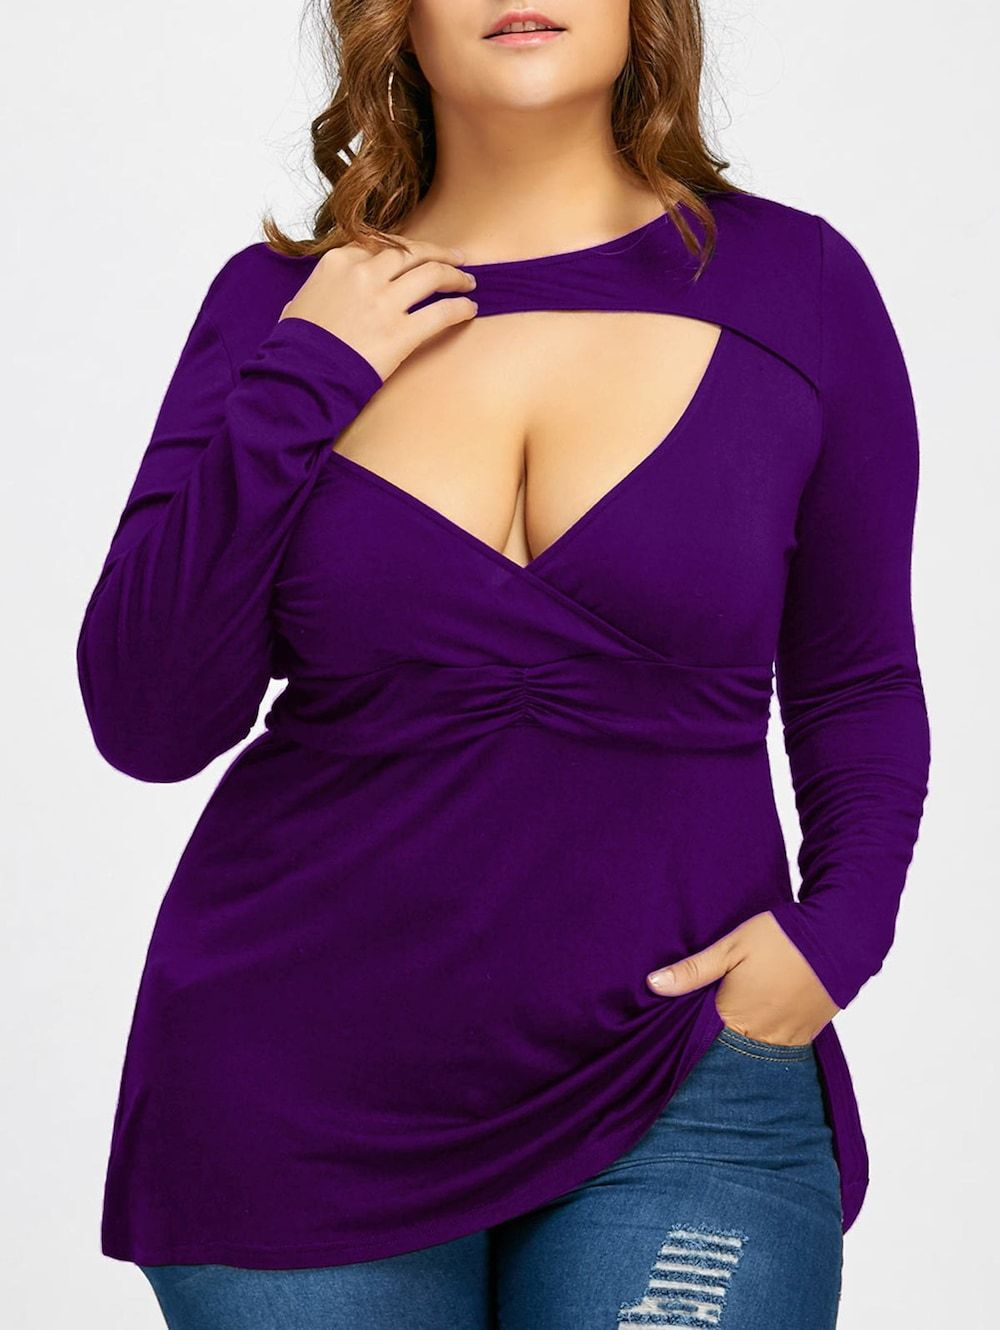 48363dbb01c52 Empire Waist Plus Size Cut Out T-shirt - PURPLE 3XL